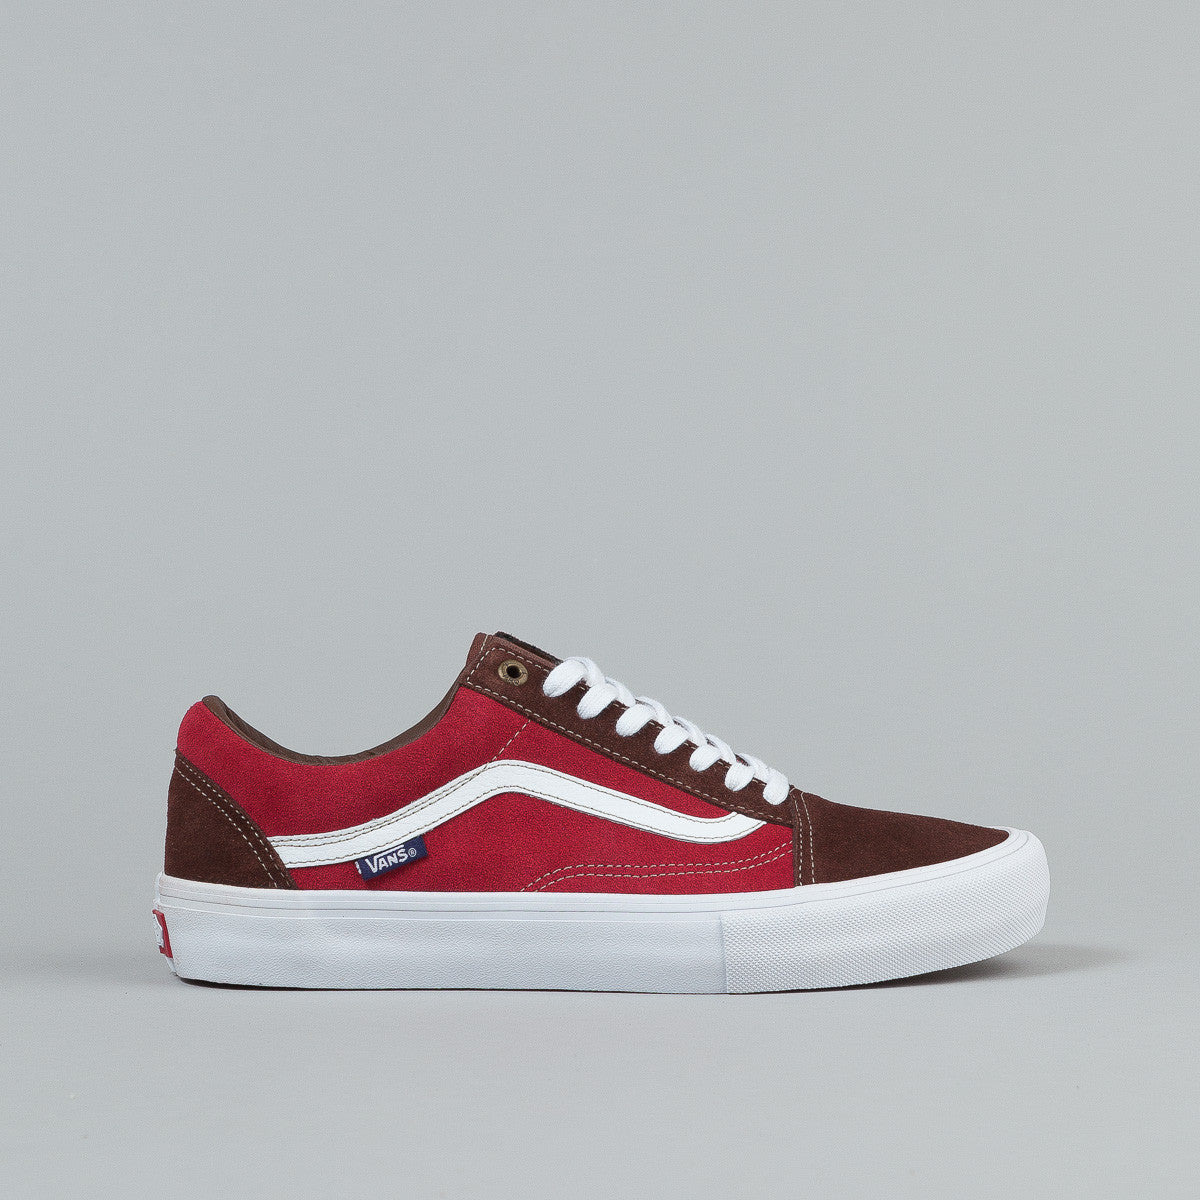 Vans Old Skool Pro Shoes - Potting Soil / Jester Red